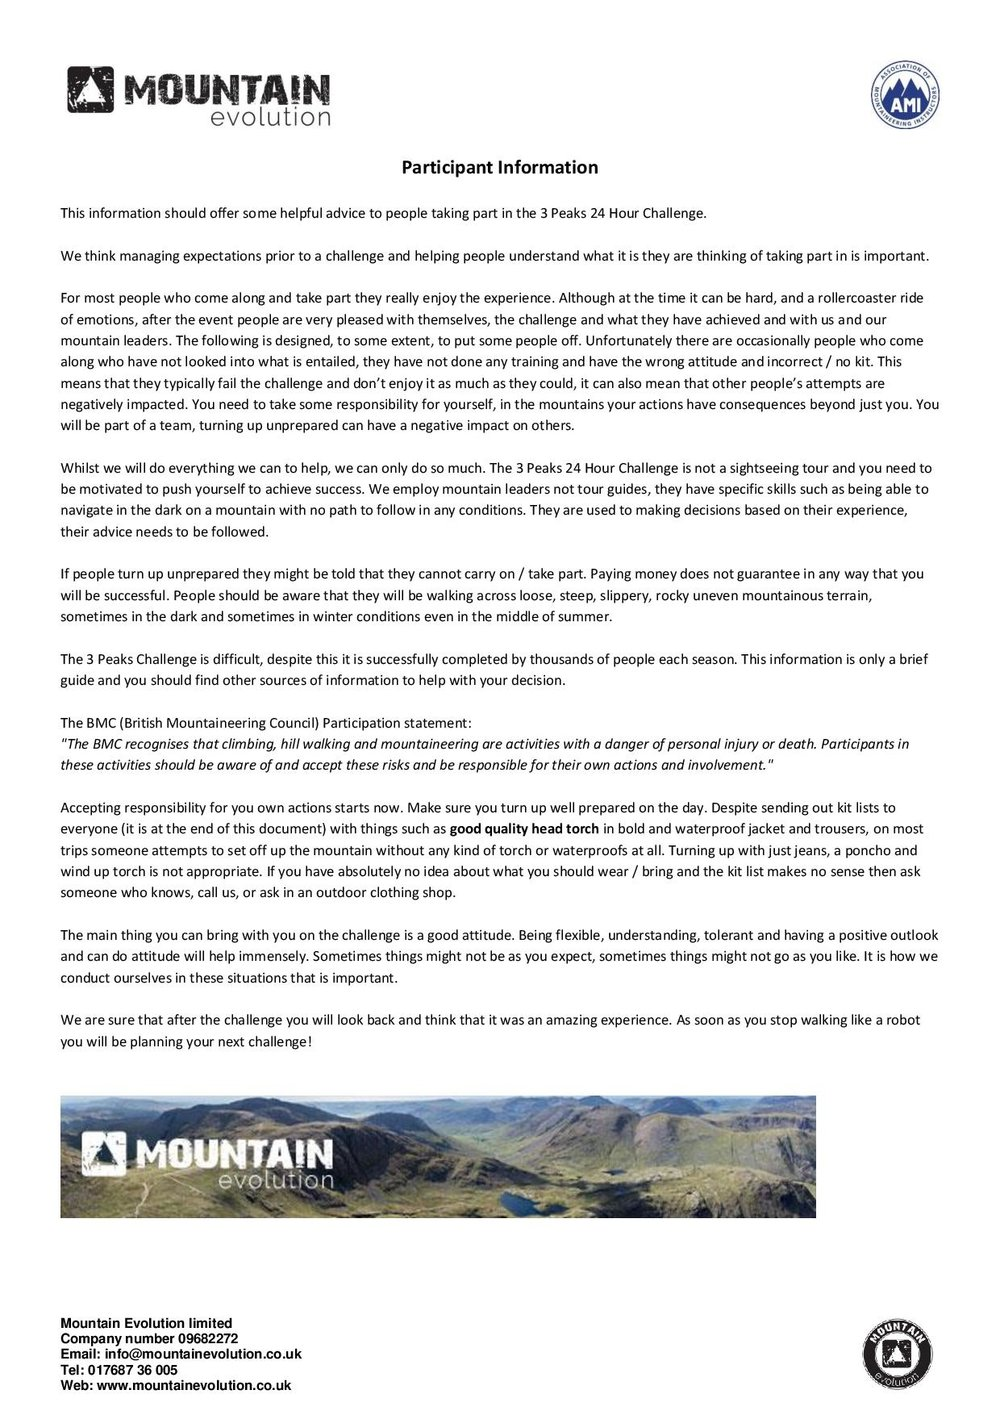 Information. 3 Peaks. Mountain Evolution. (1)-page-002.jpg